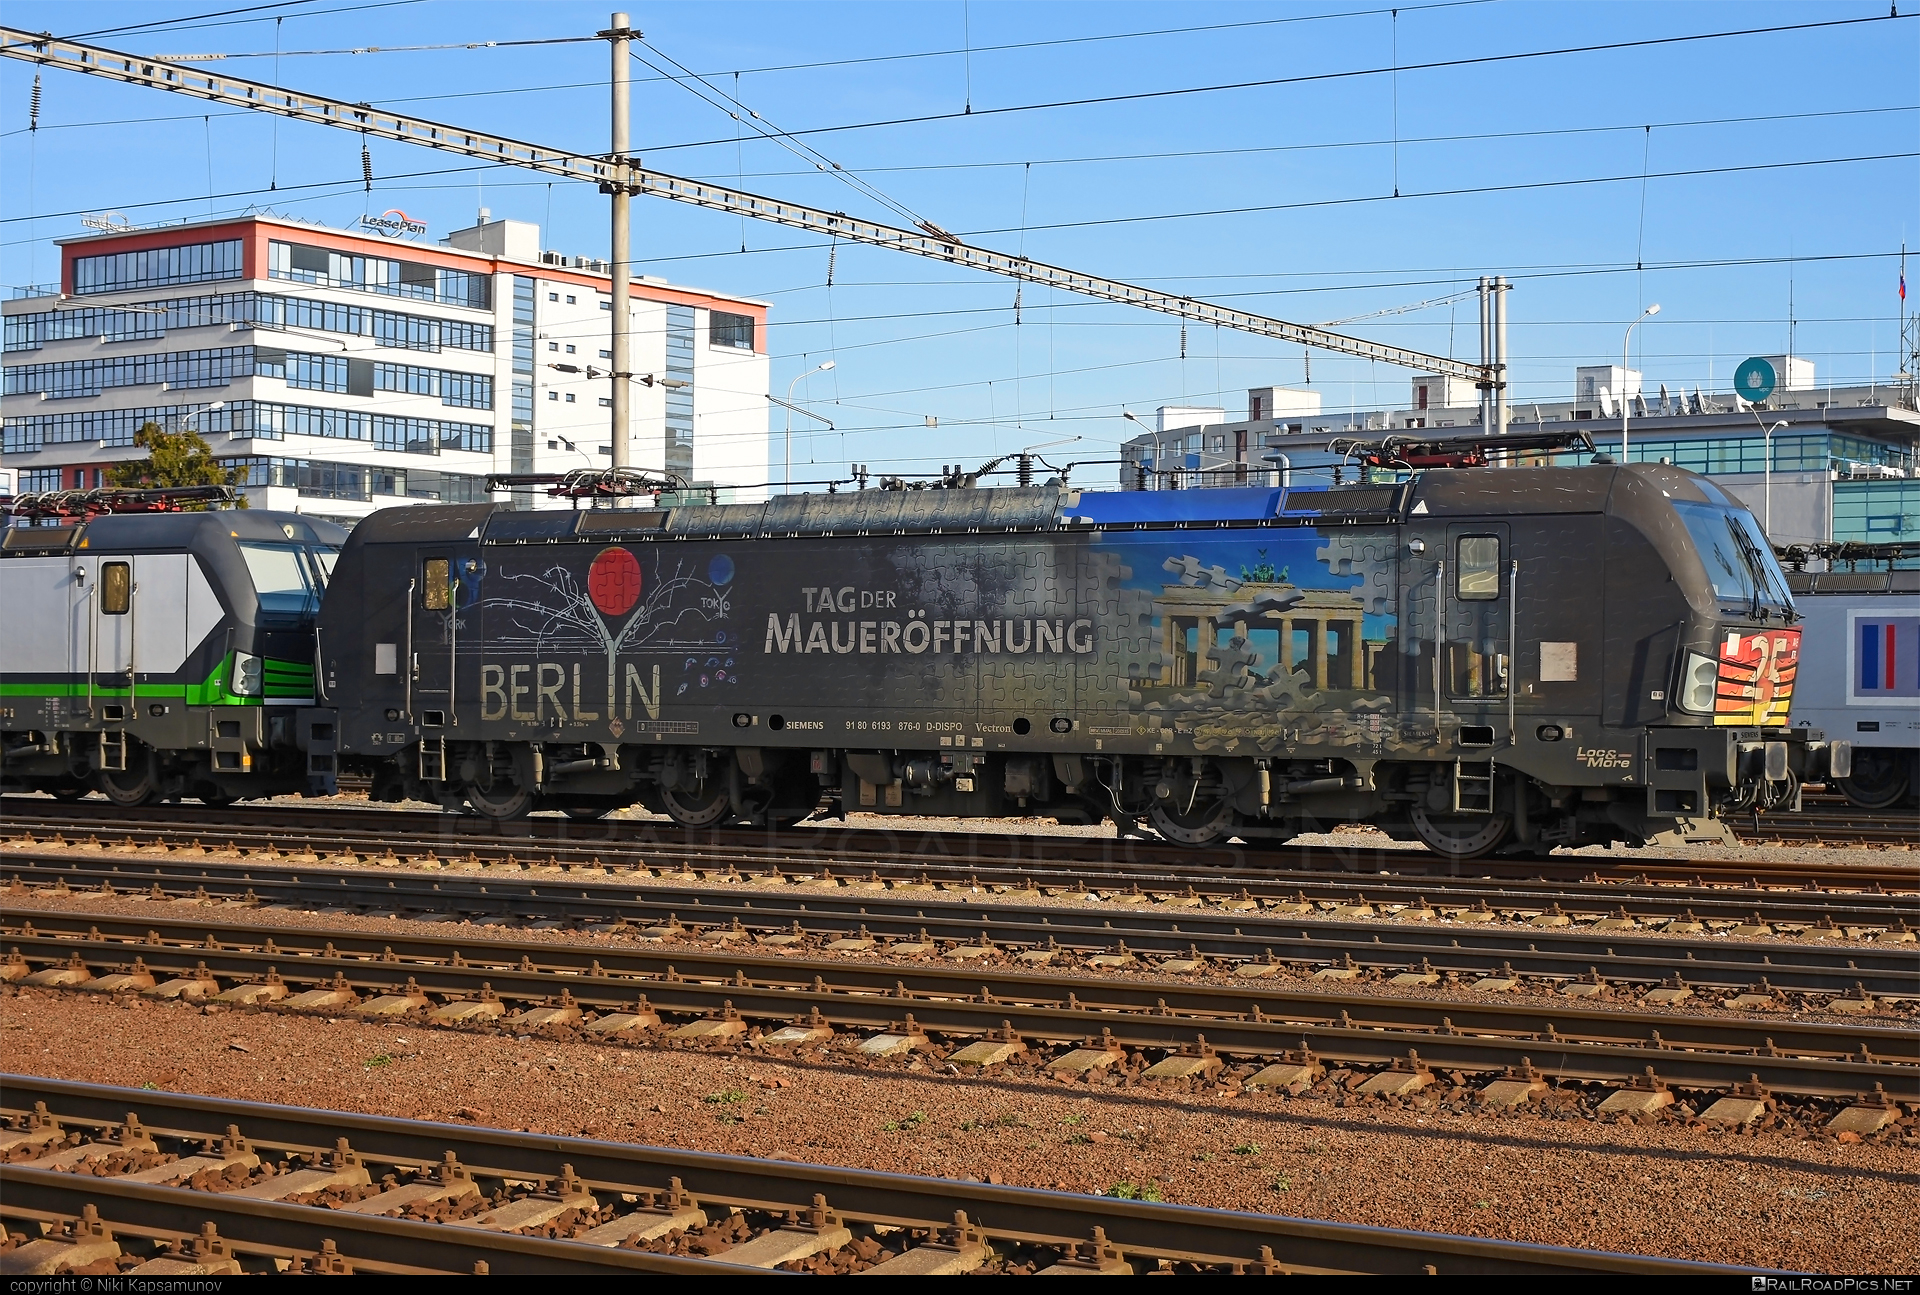 Siemens Vectron AC - 193 876 operated by LTE Logistik und Transport GmbH #dispolok #lte #ltelogistikundtransport #ltelogistikundtransportgmbh #mitsuirailcapitaleurope #mitsuirailcapitaleuropegmbh #mrce #siemens #siemensvectron #siemensvectronac #vectron #vectronac